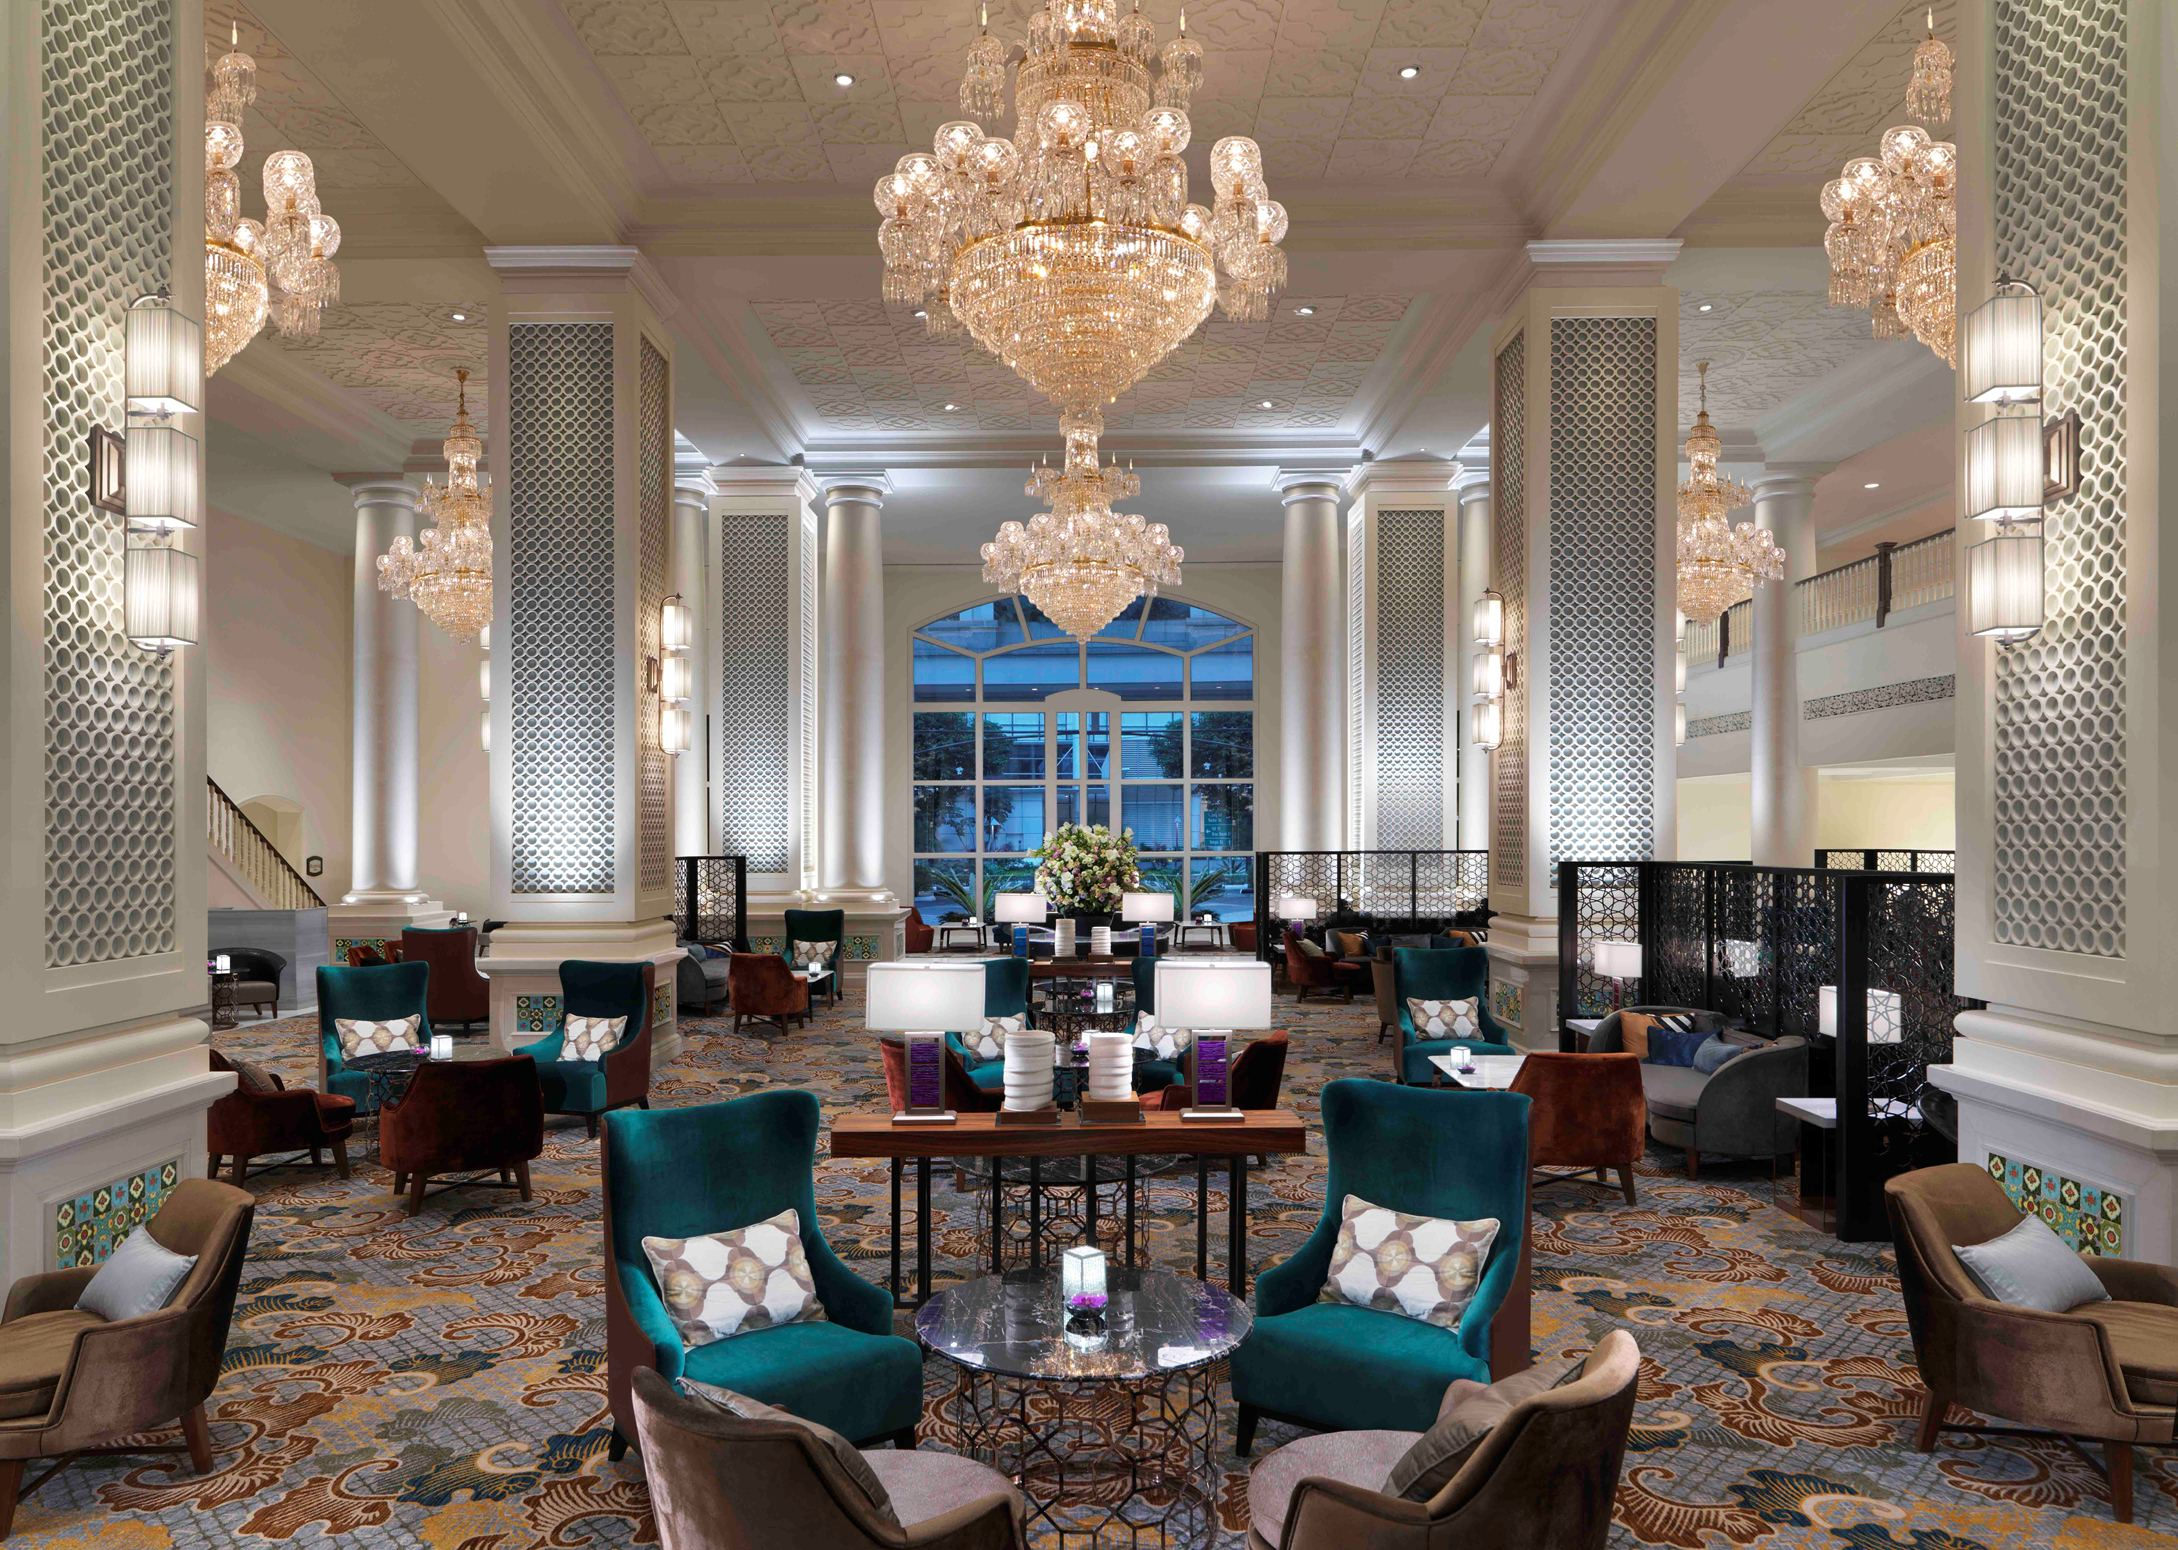 InterContinental Singapore_The Lobby Lounge_LR